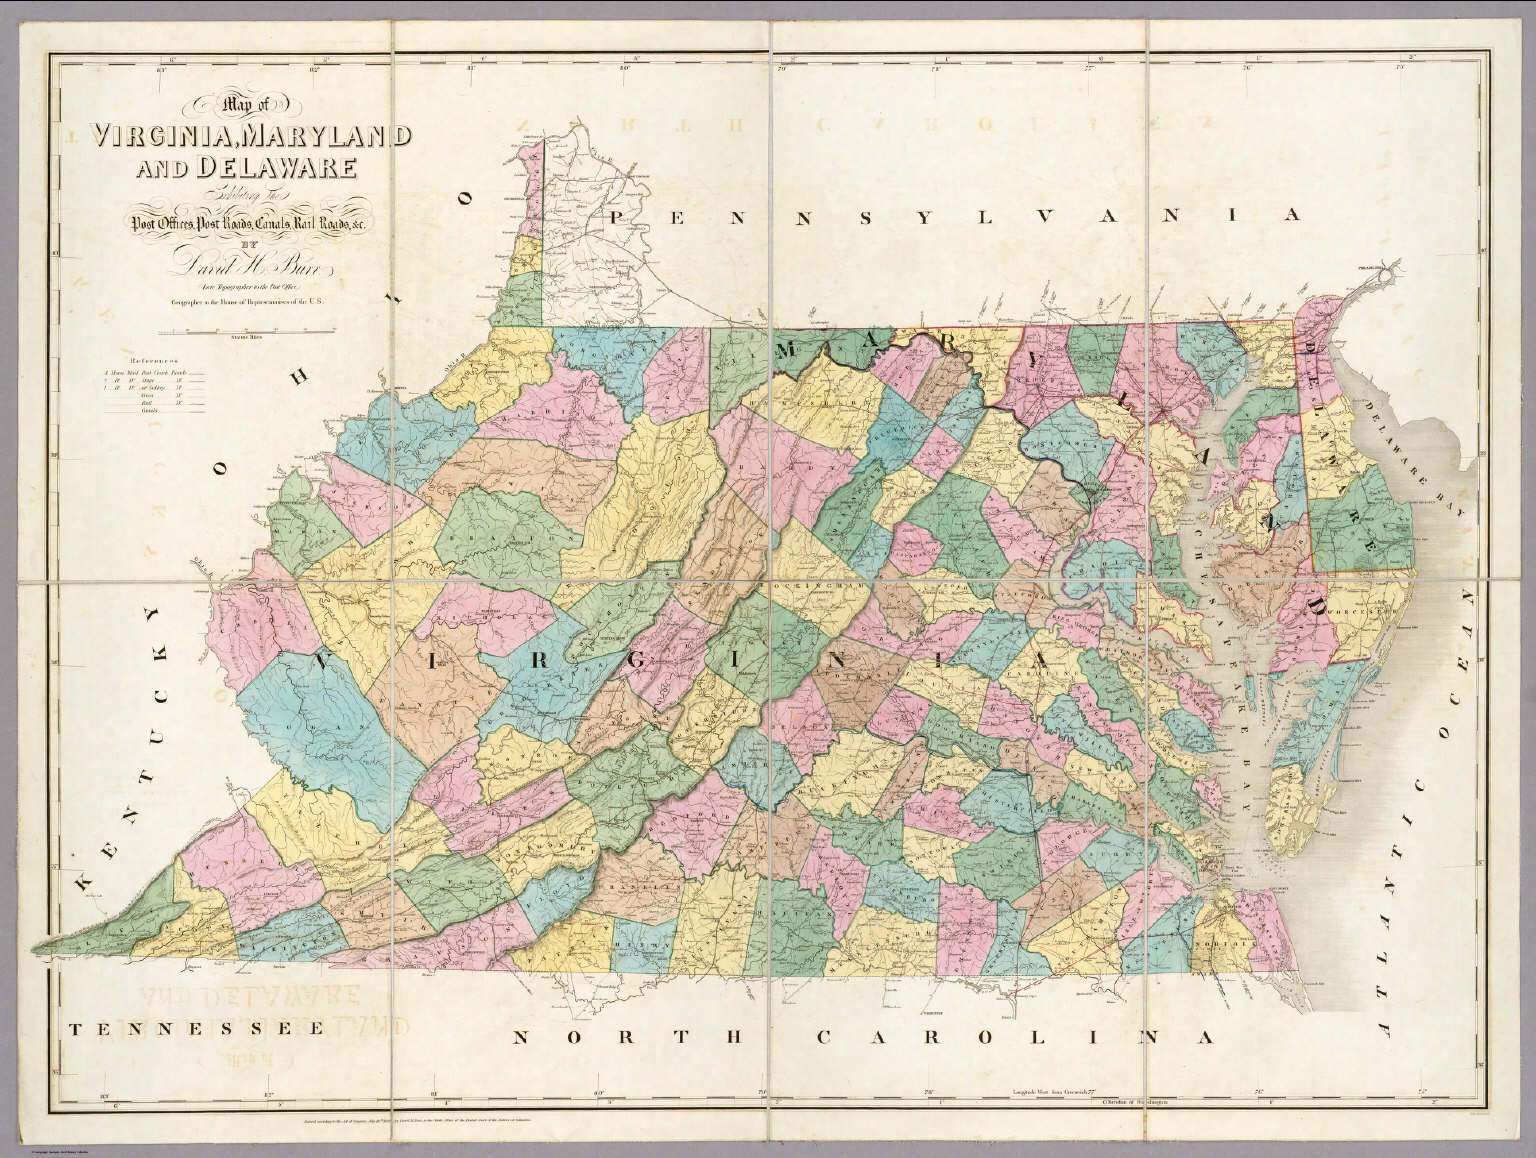 Map Of Virginia And Maryland Map of Virginia, Maryland and Delaware. / Burr, David H., 1803  Map Of Virginia And Maryland